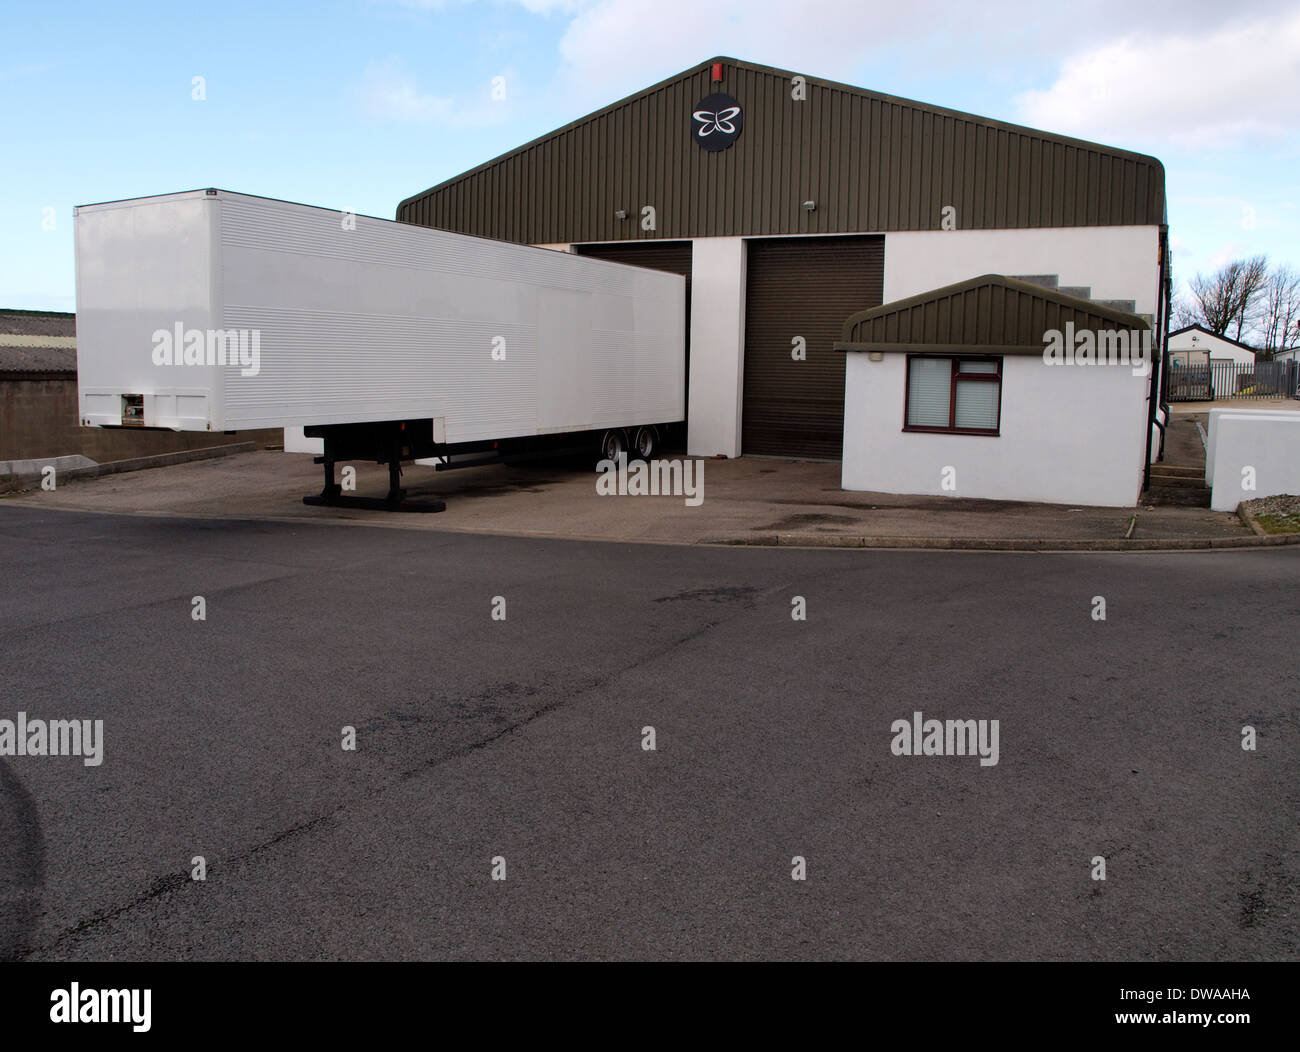 8205 cornwall - Semi Trailer Parked Outside Warehouse On Industrial Estate Bude Cornwall Uk